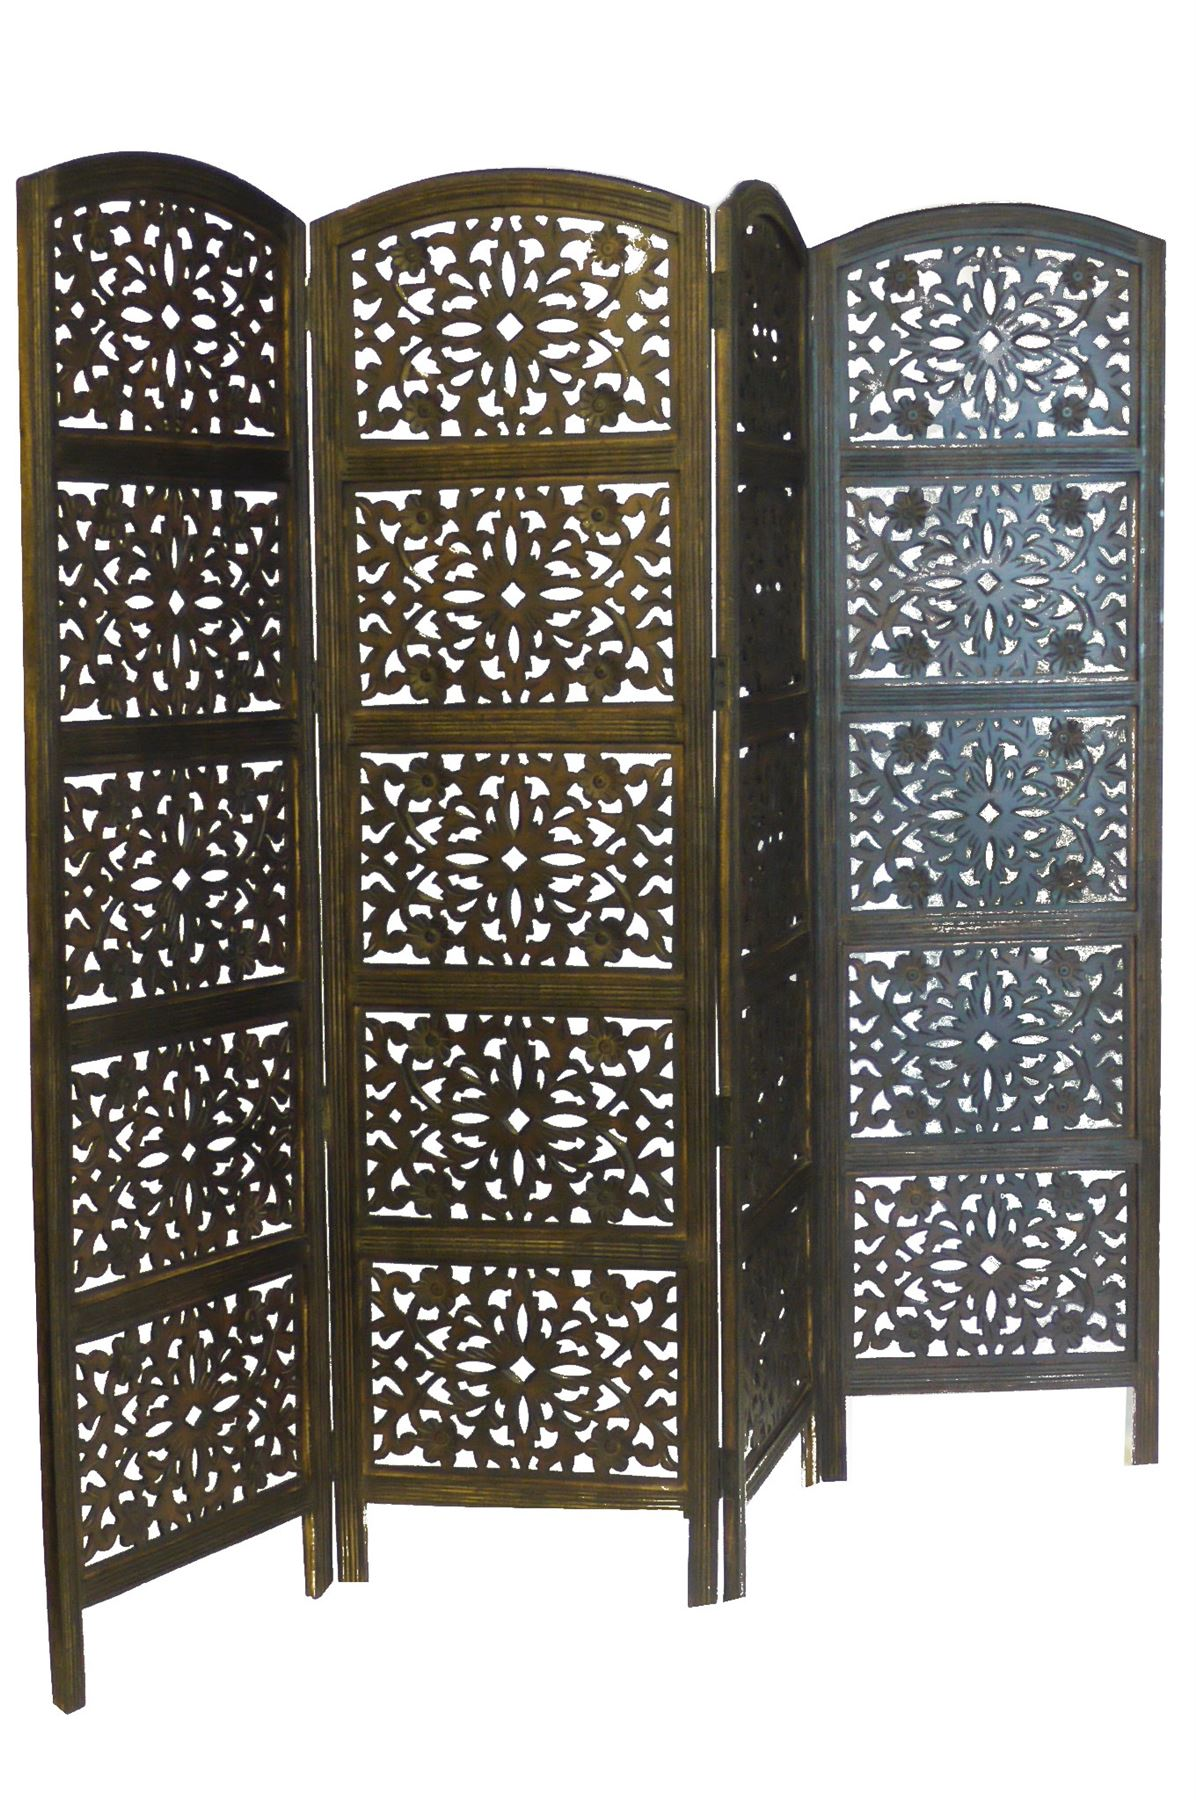 Wonderful image of   Heavy Duty Indian Screen Wooden Flower Design Screen Room Divider with #5B4C36 color and 1196x1800 pixels